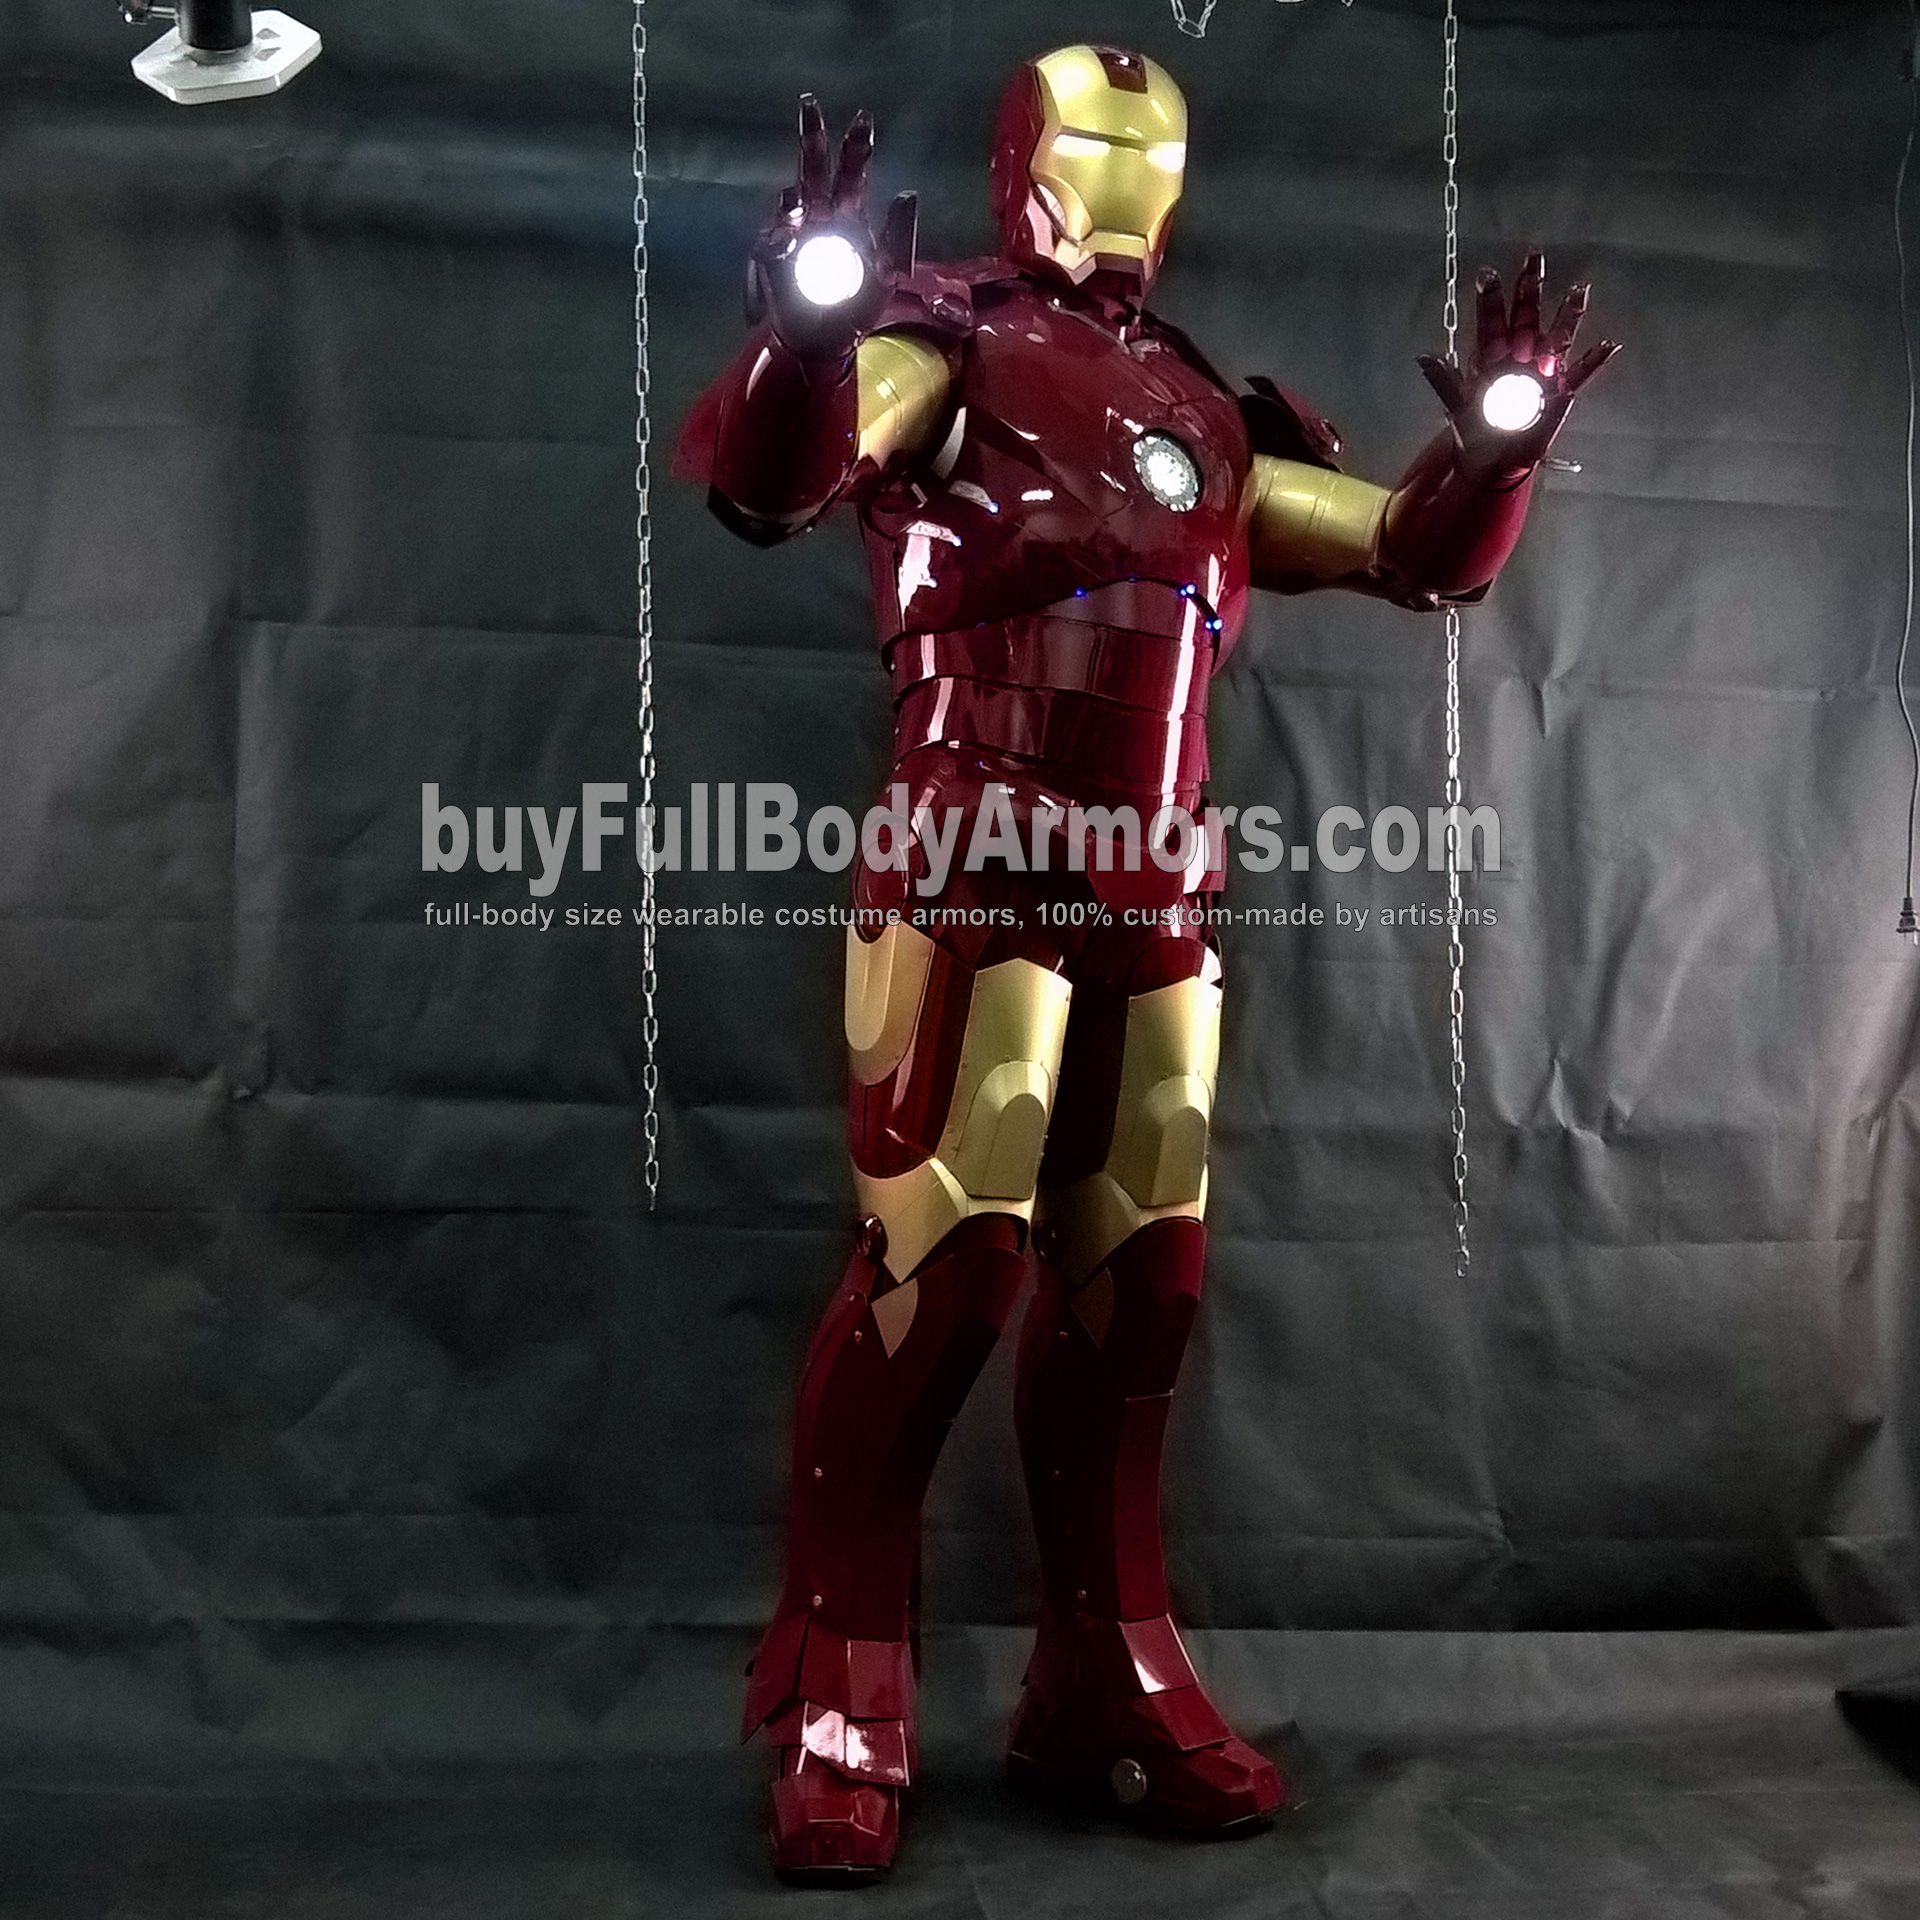 Wearing the Wearable Iron Man Suit Mark 3 III Armor Costume - Photos 5